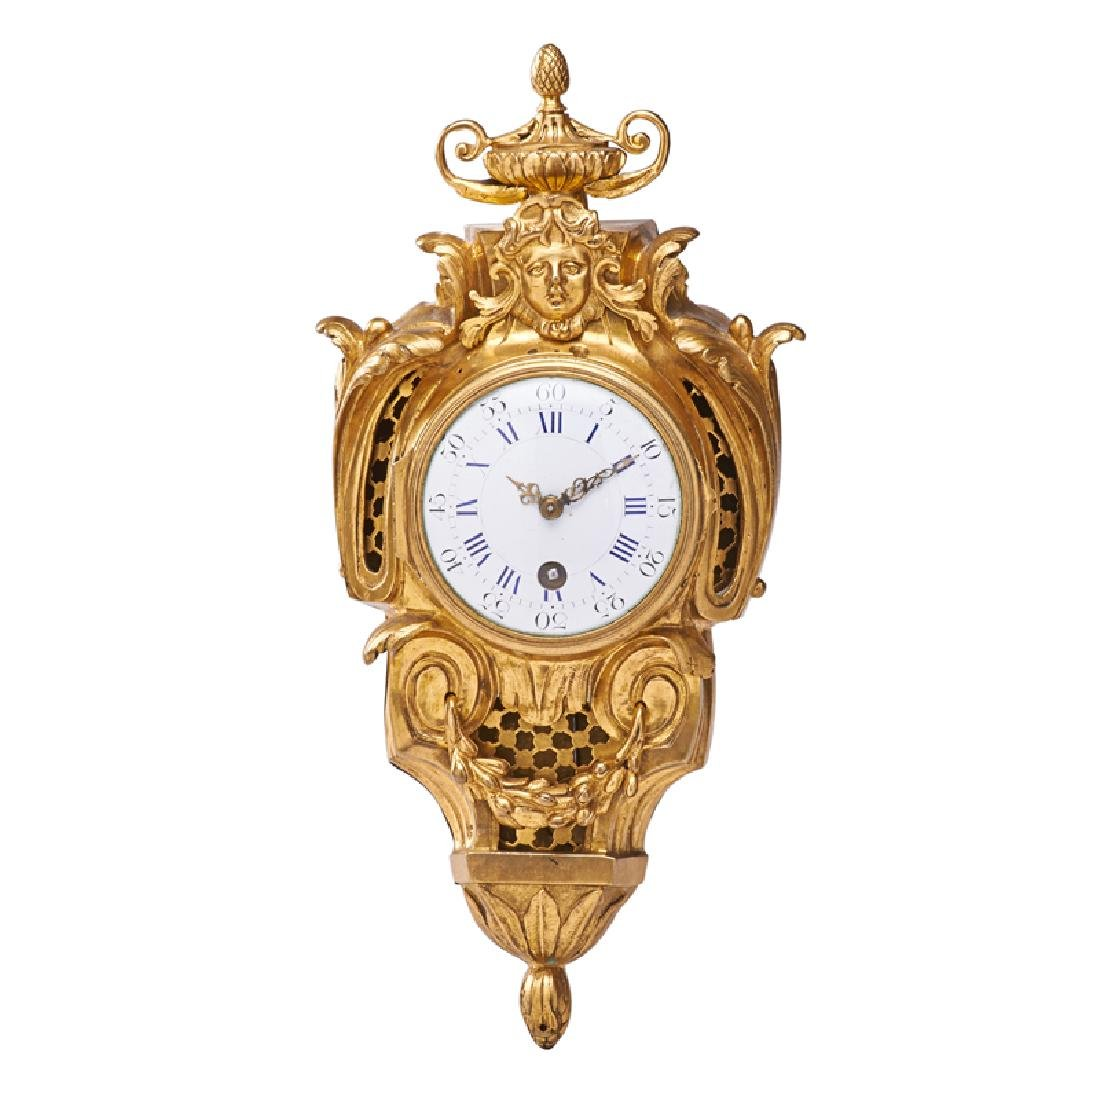 DIMINUTIVE LOUIS XV GILT BRONZE CARTEL CLOCK